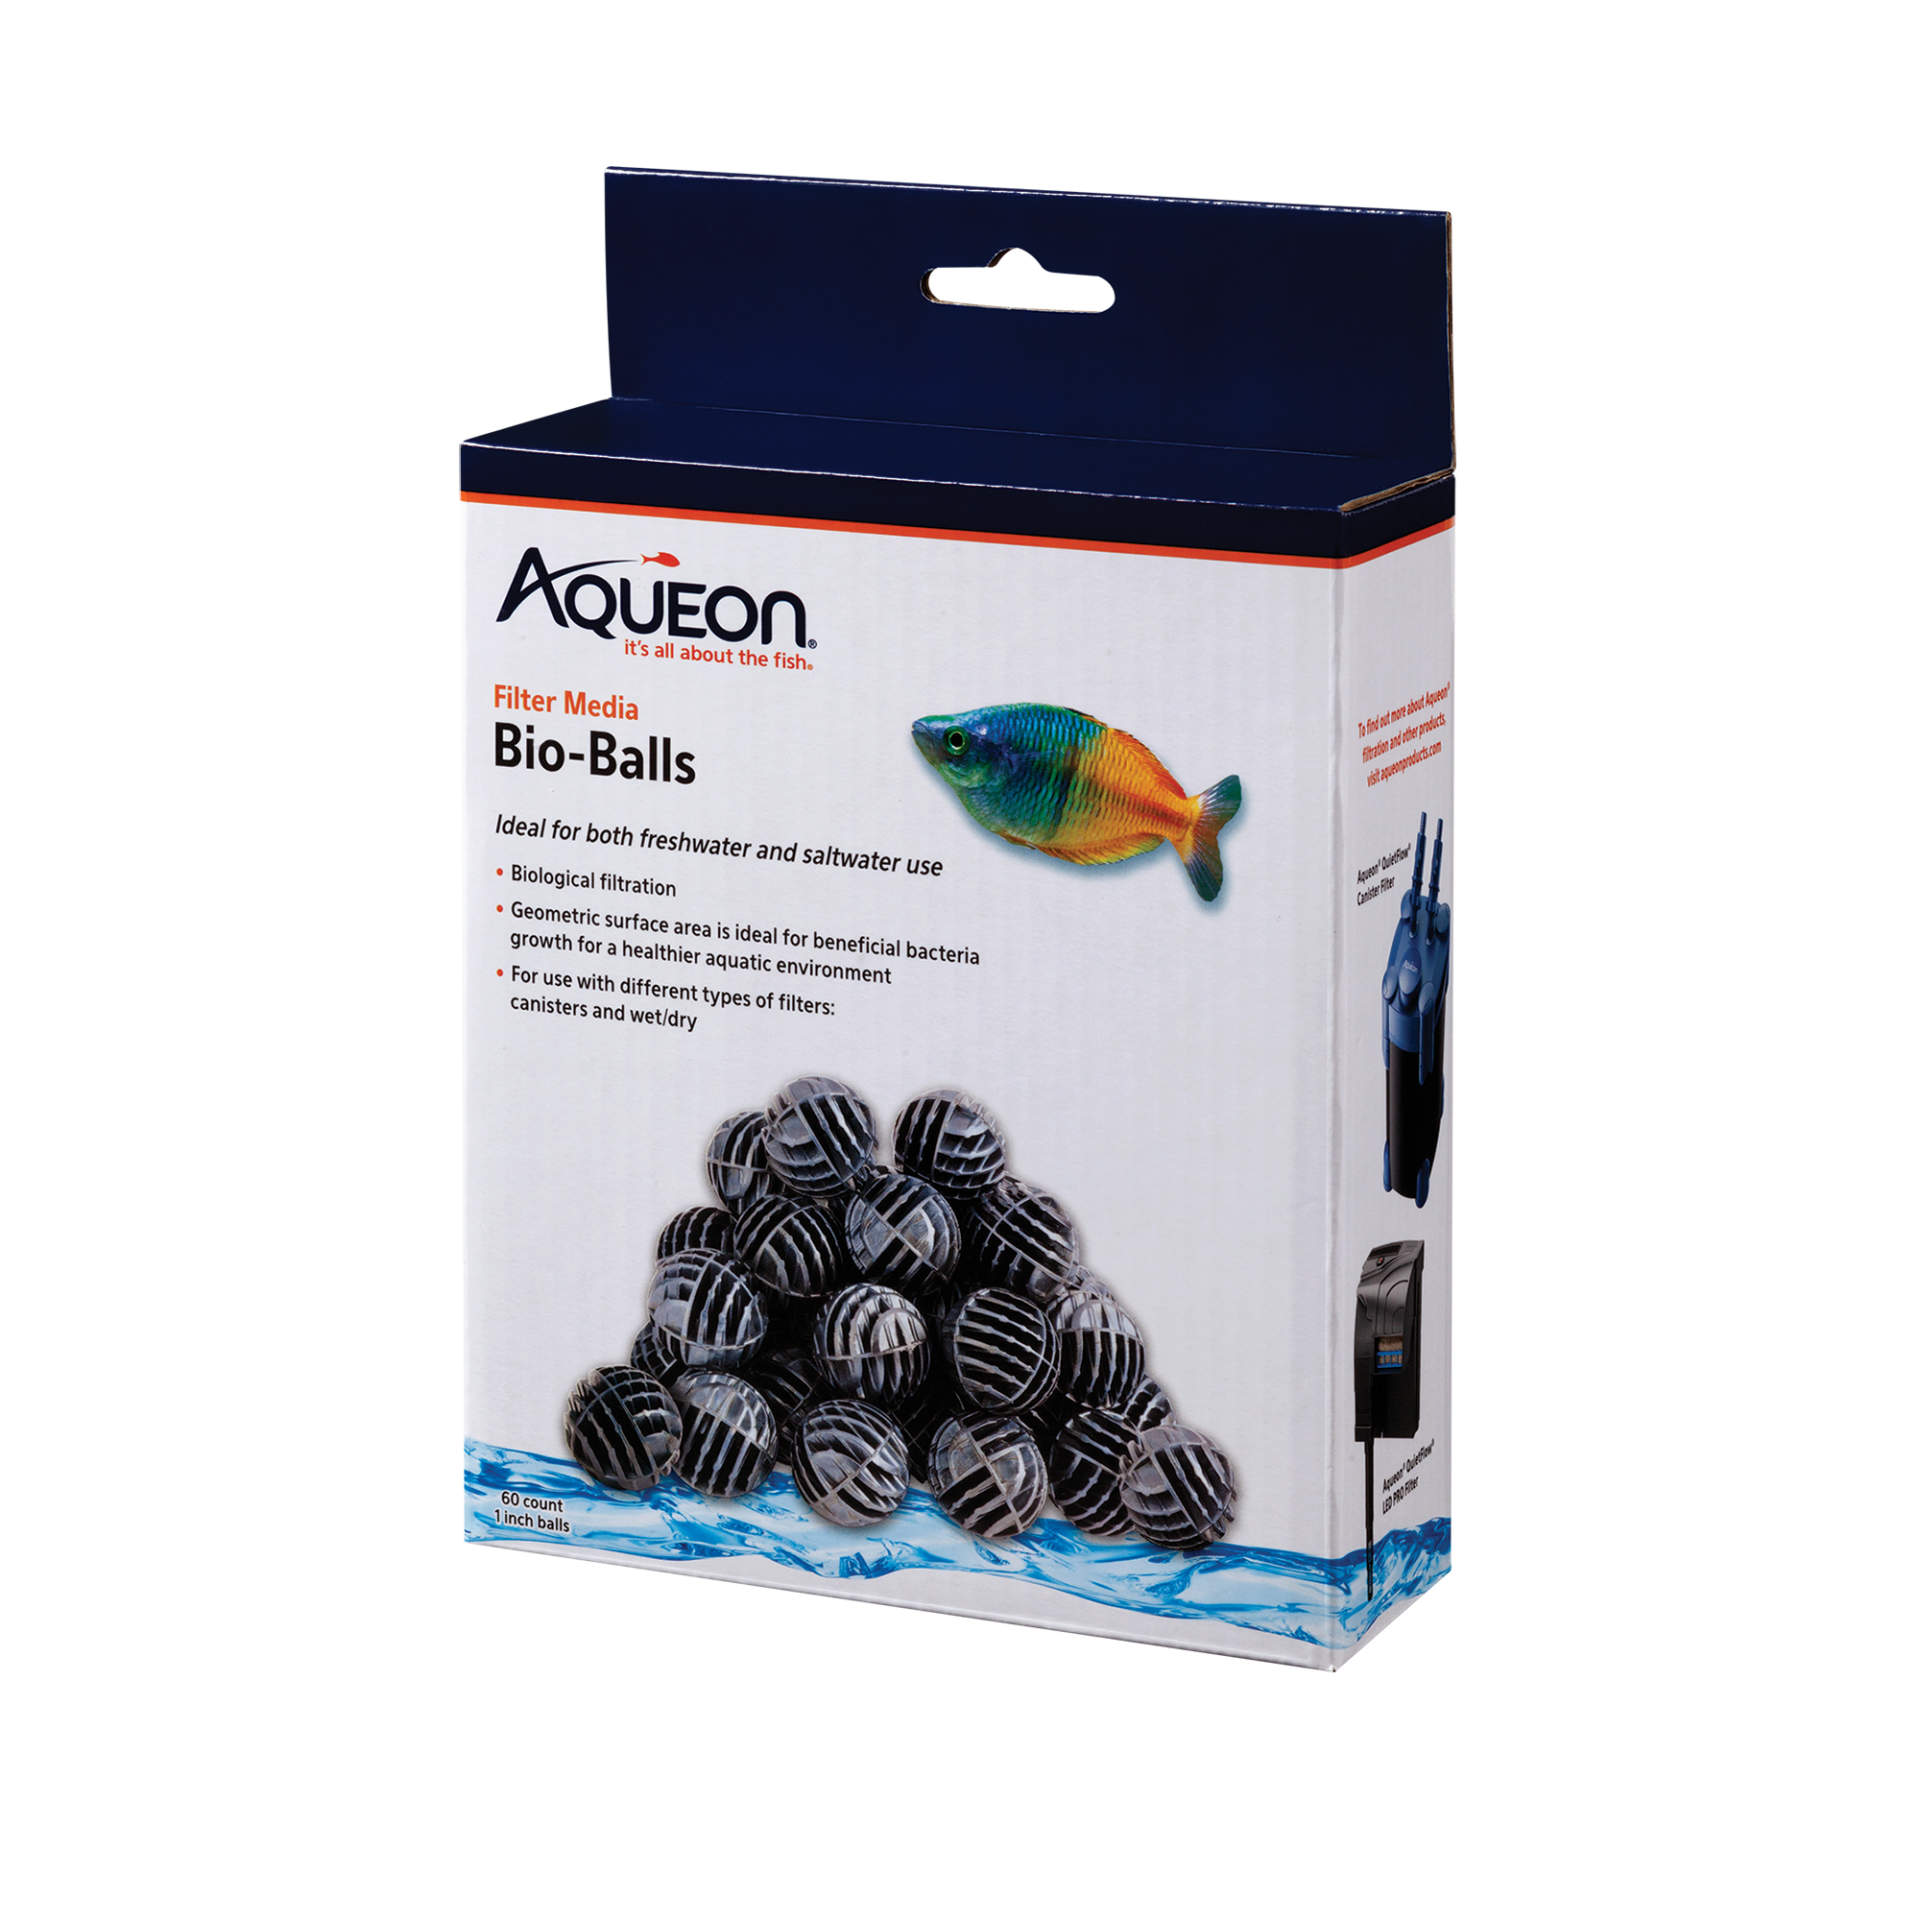 Aqueon QuietFlow Bio-Balls Filter Media, 60-count